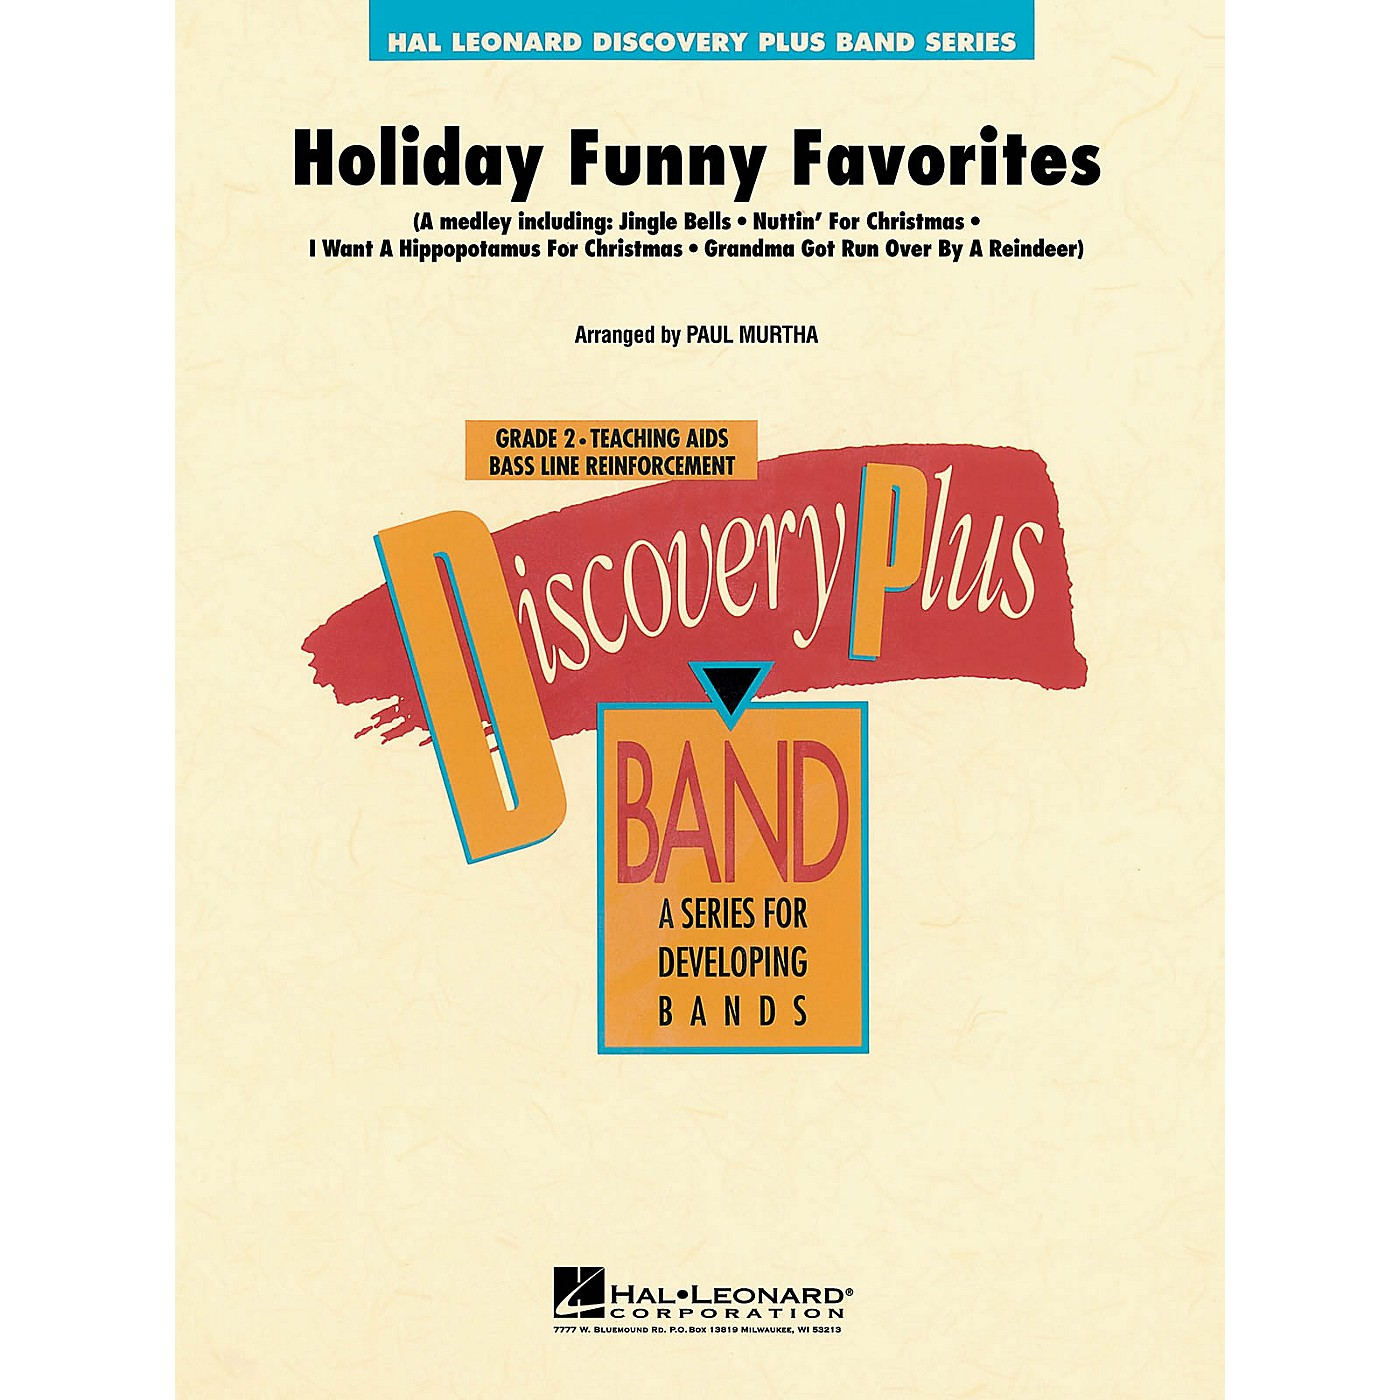 Hal Leonard Holiday Funny Favorites - Discovery Plus Concert Band Series Level 2 arranged by Paul Murtha thumbnail